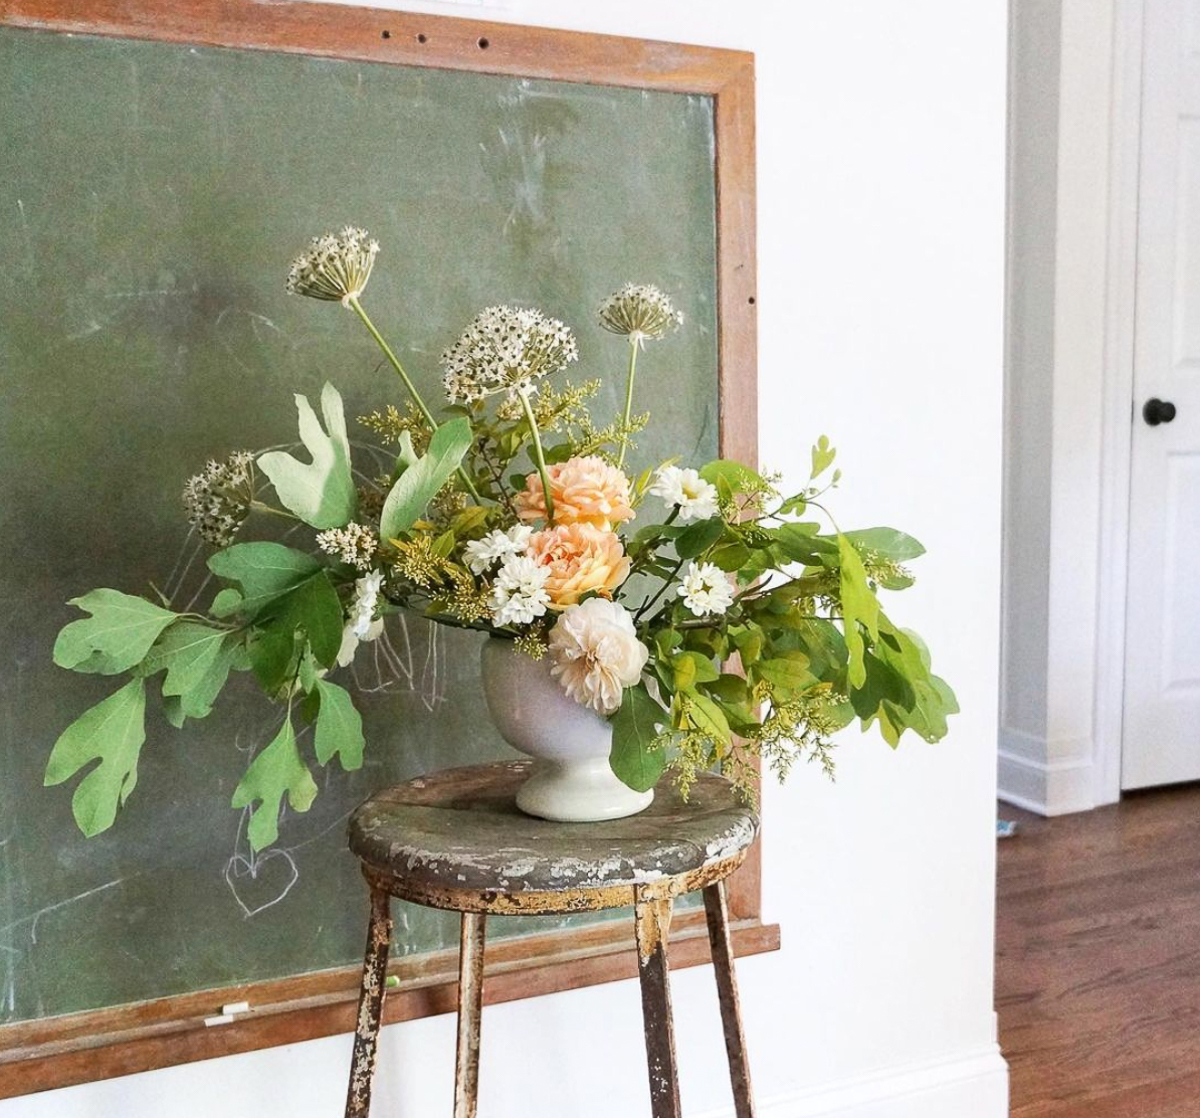 Vintage green chalkboard is the perfect backdrop for a bouquet of fresh flowers kellyelko.com